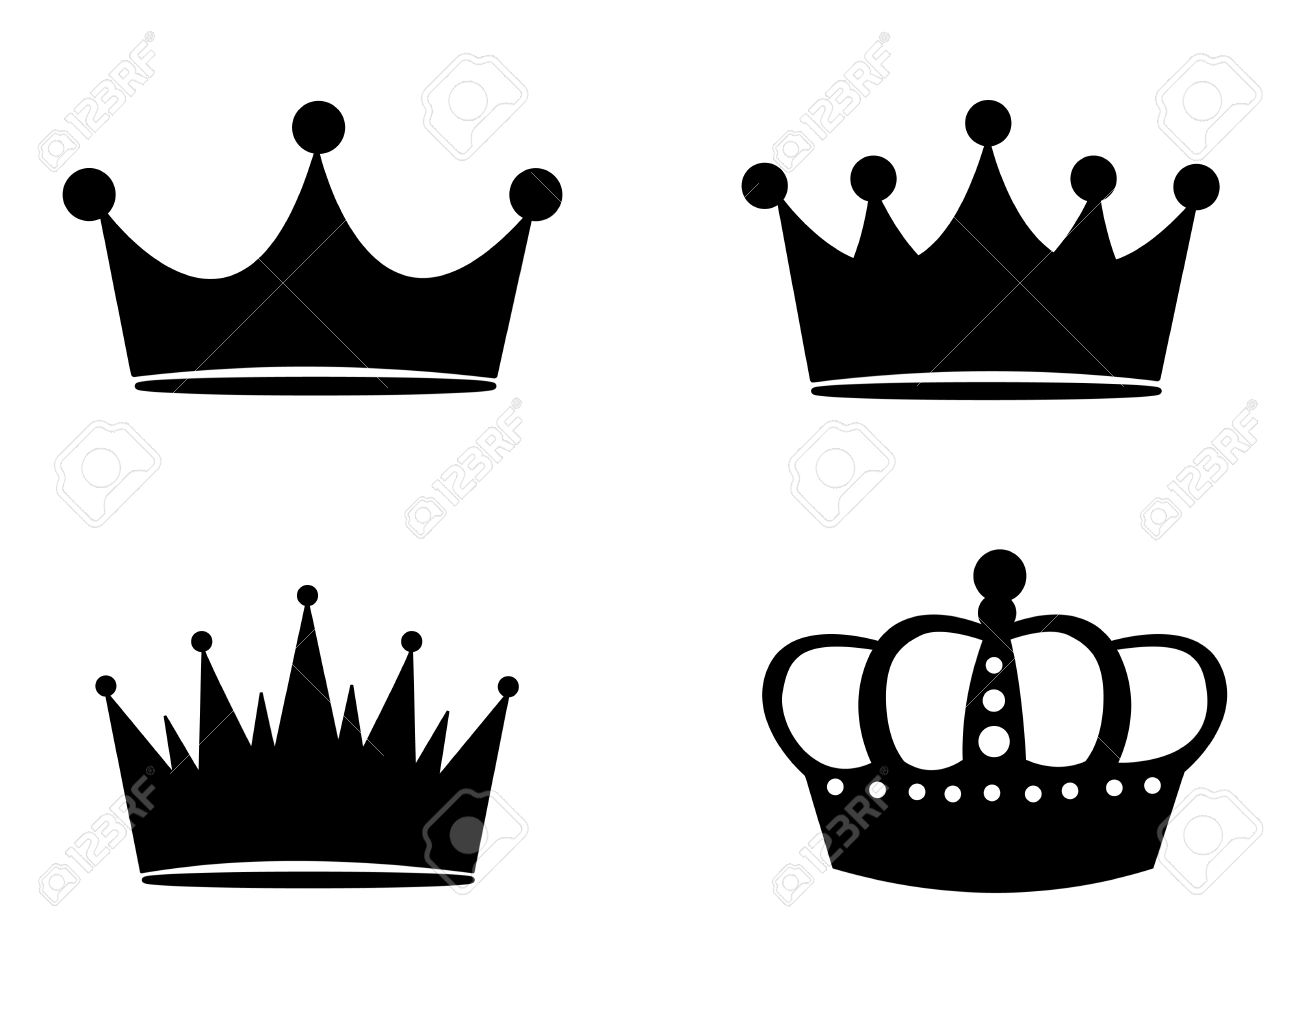 Illustration Of Black Crown Silhouettes Isolated On White.